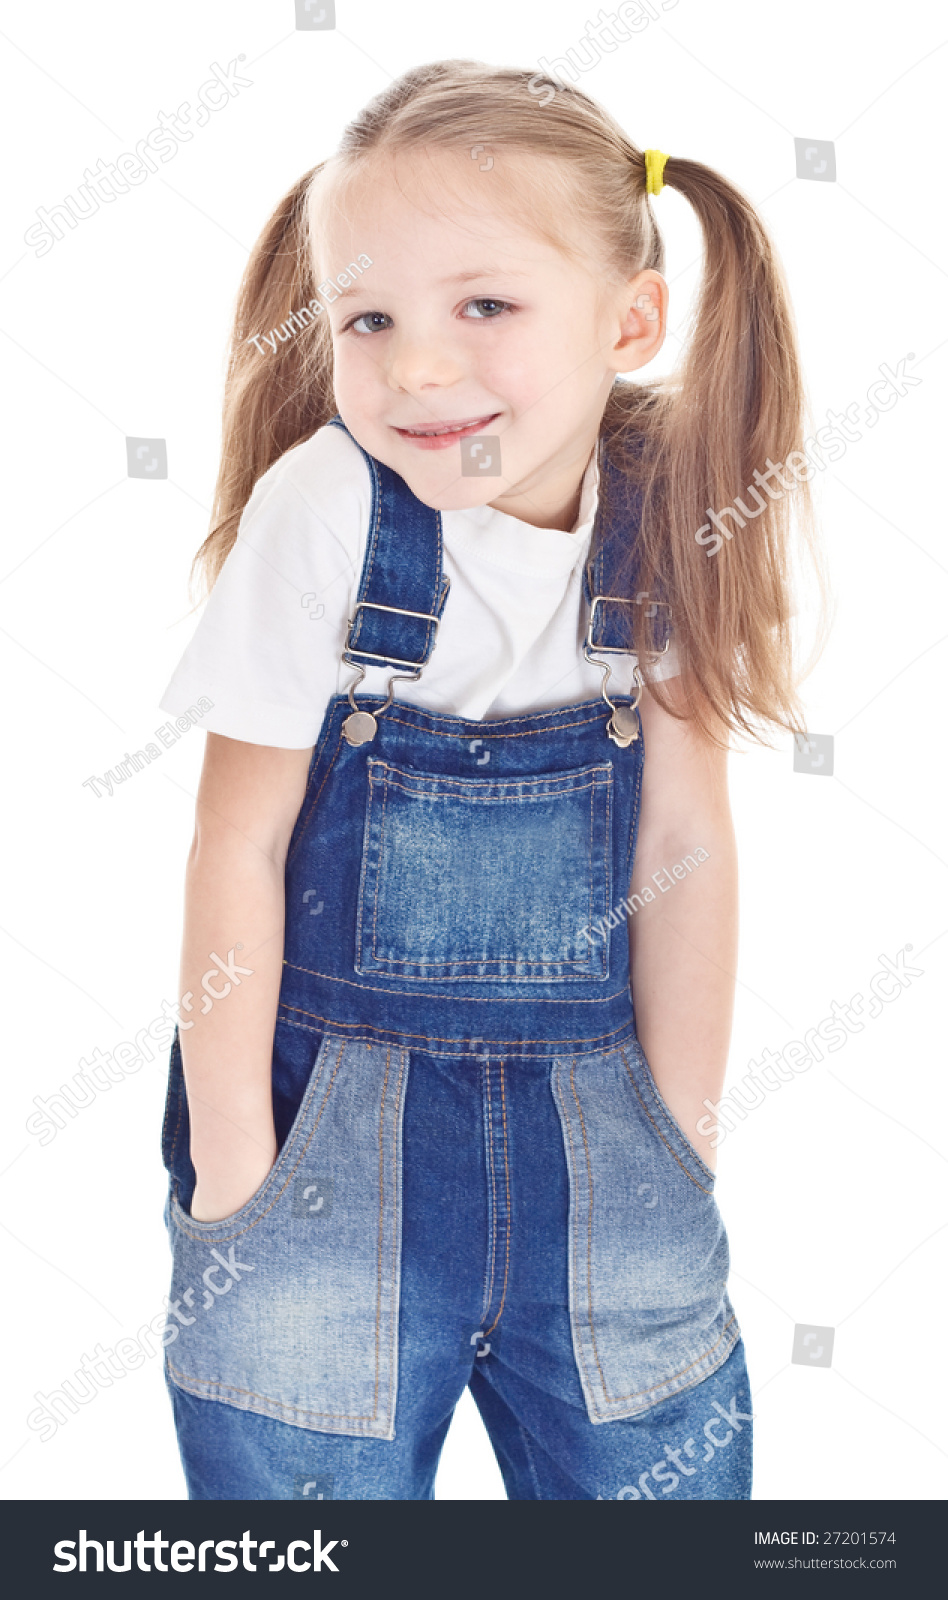 Buy Girls Overalls at Overall Warehouse at great prices. See our large selection of high quality Carhartt Girls Overalls, Girls Denim Bib Overalls, Girls Denim Jumpers, Pink Overalls, Pink Stripe Overalls.